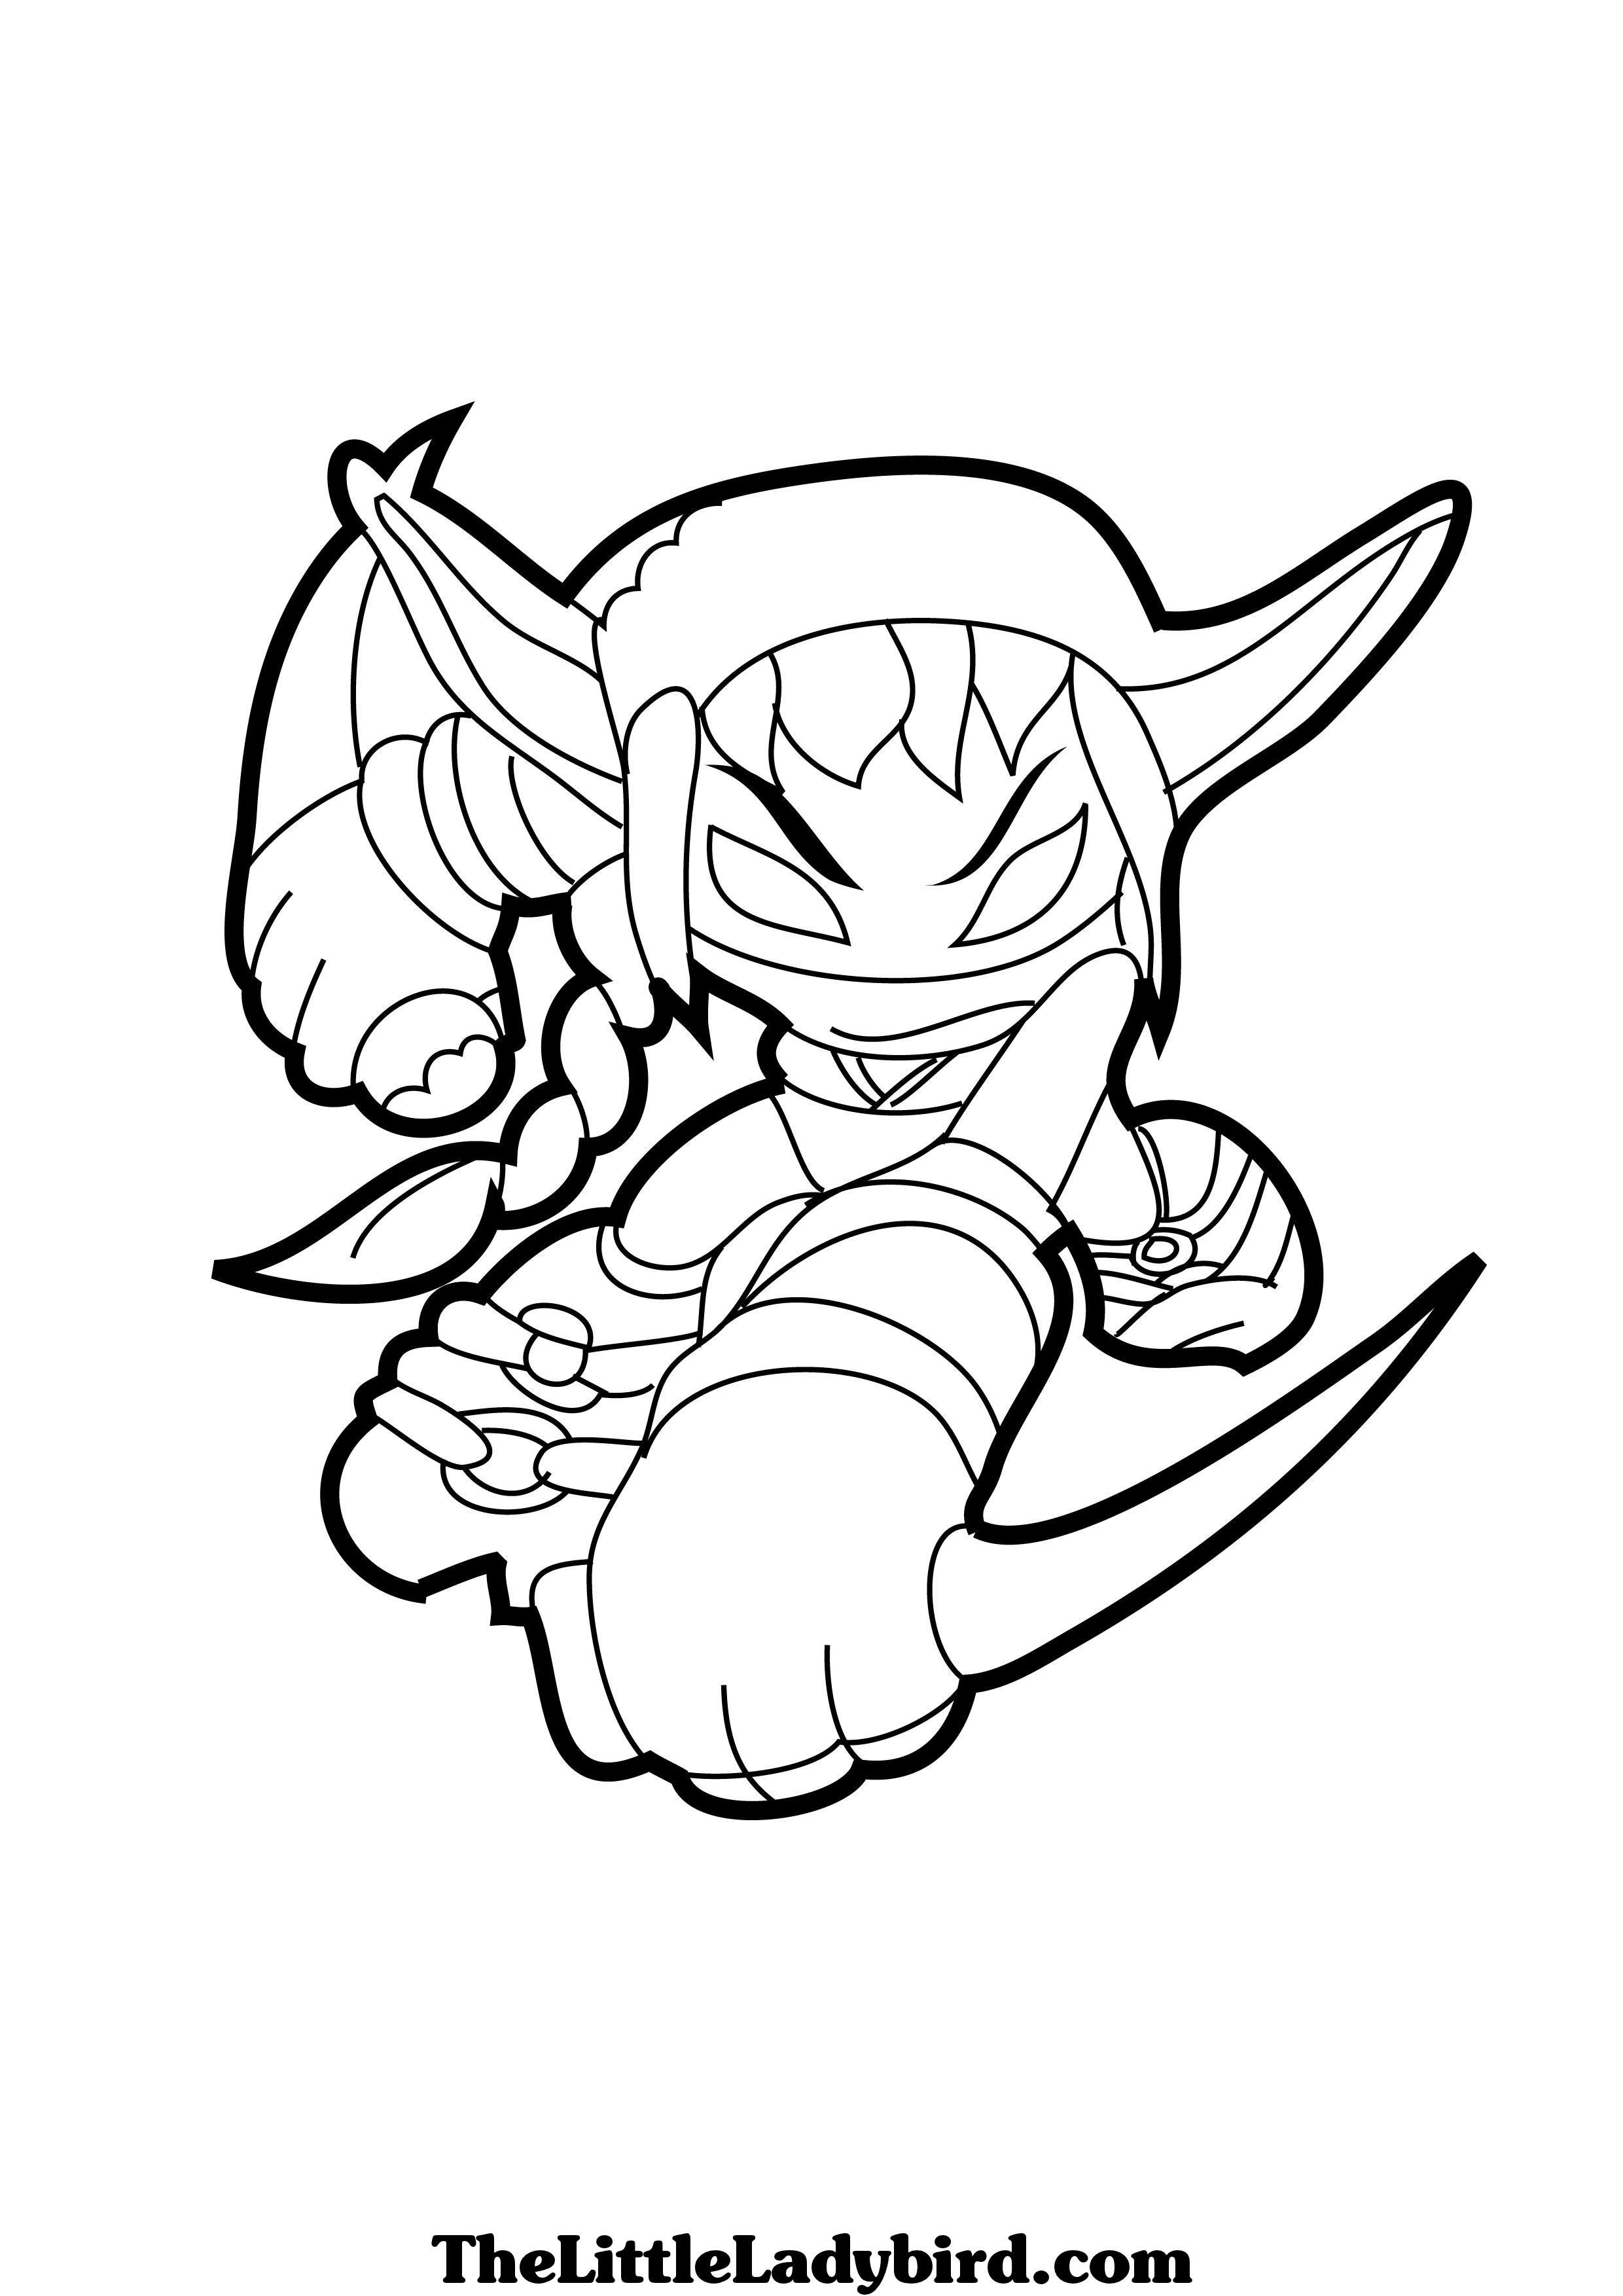 Free coloring pages for skylanders - Skylanders Coloring Page